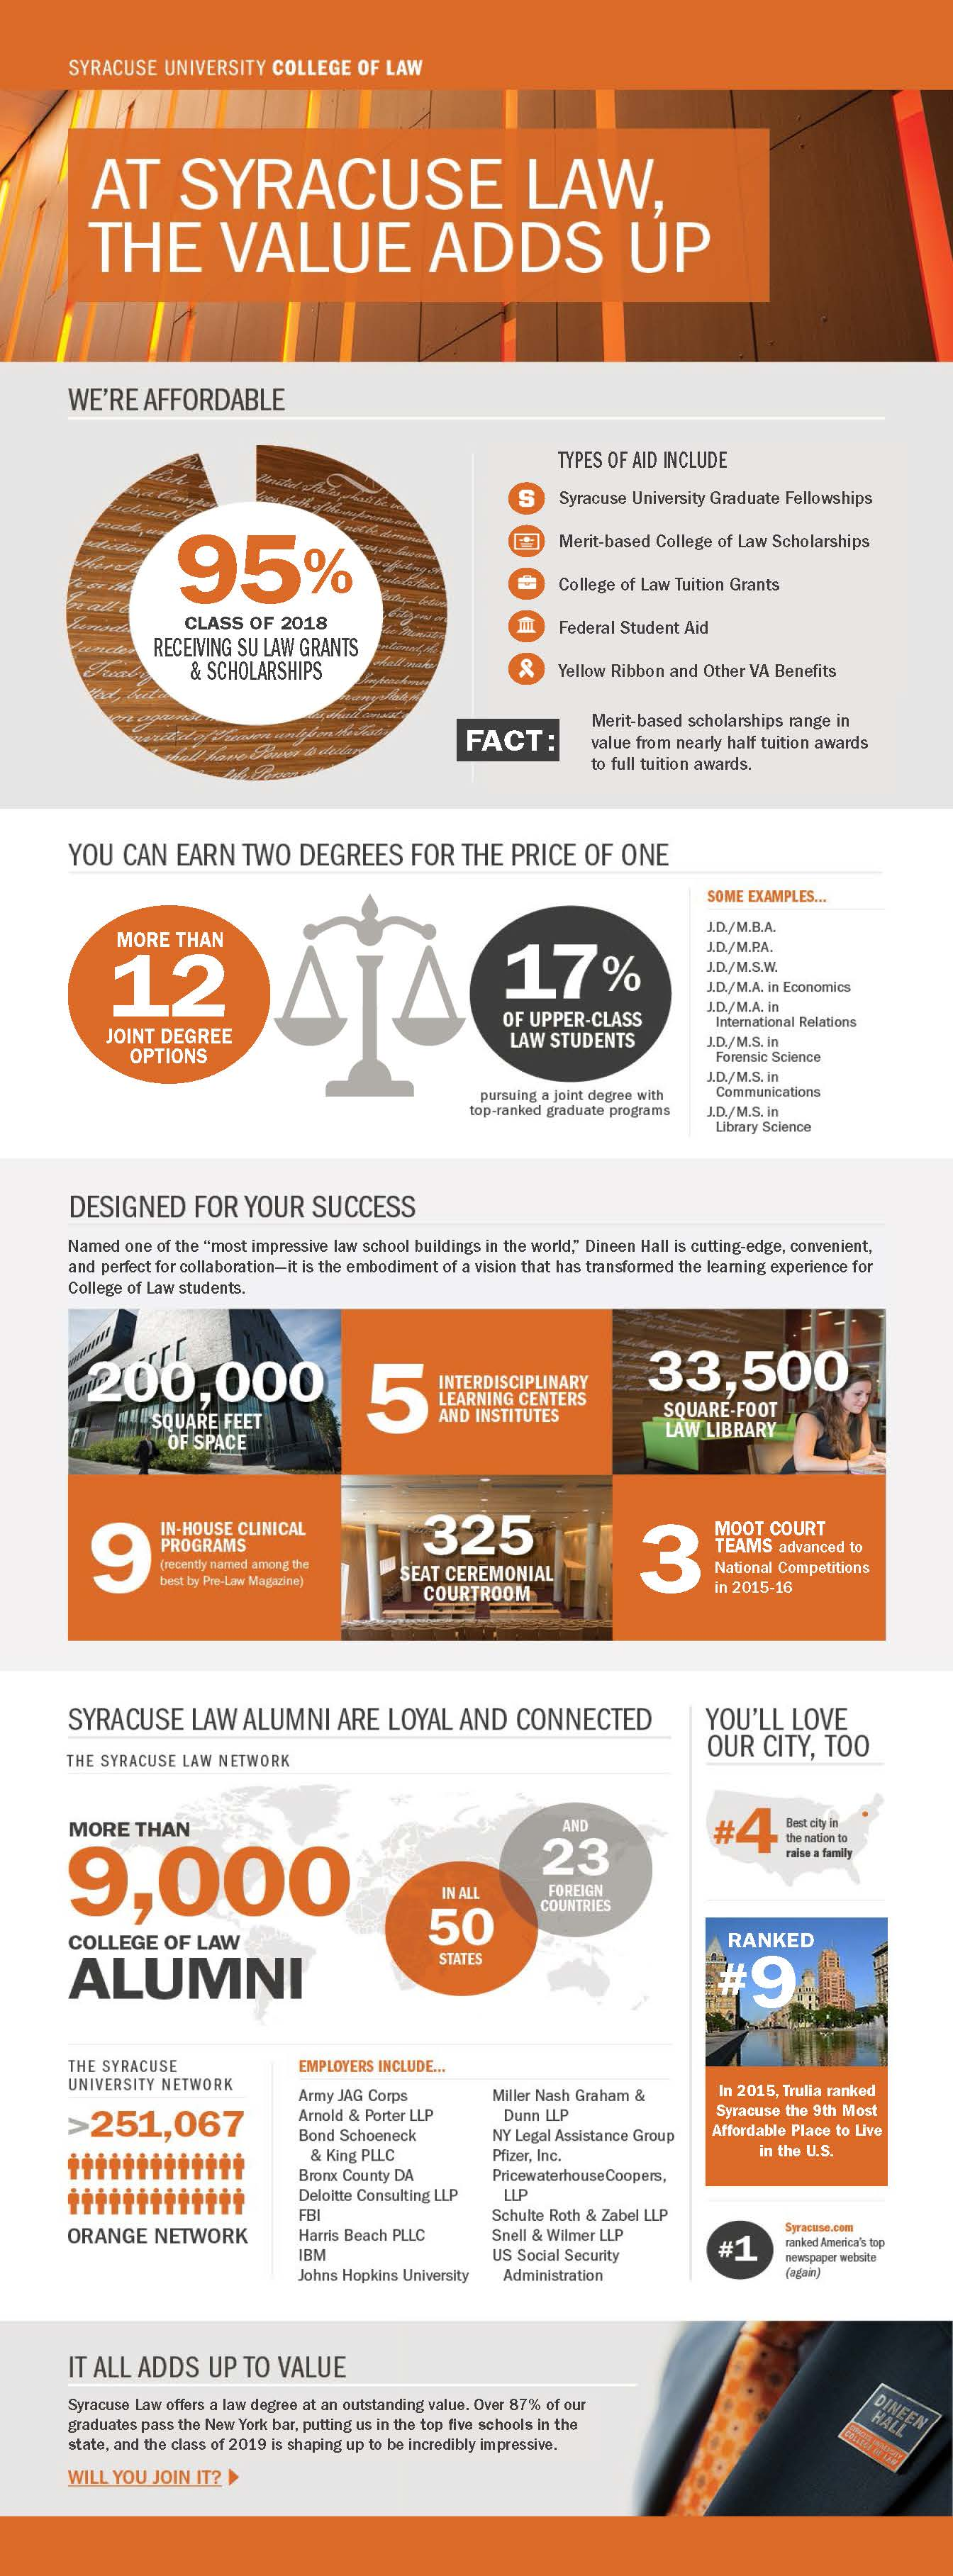 Infographic - Please contact Syracuse University College of Law for details